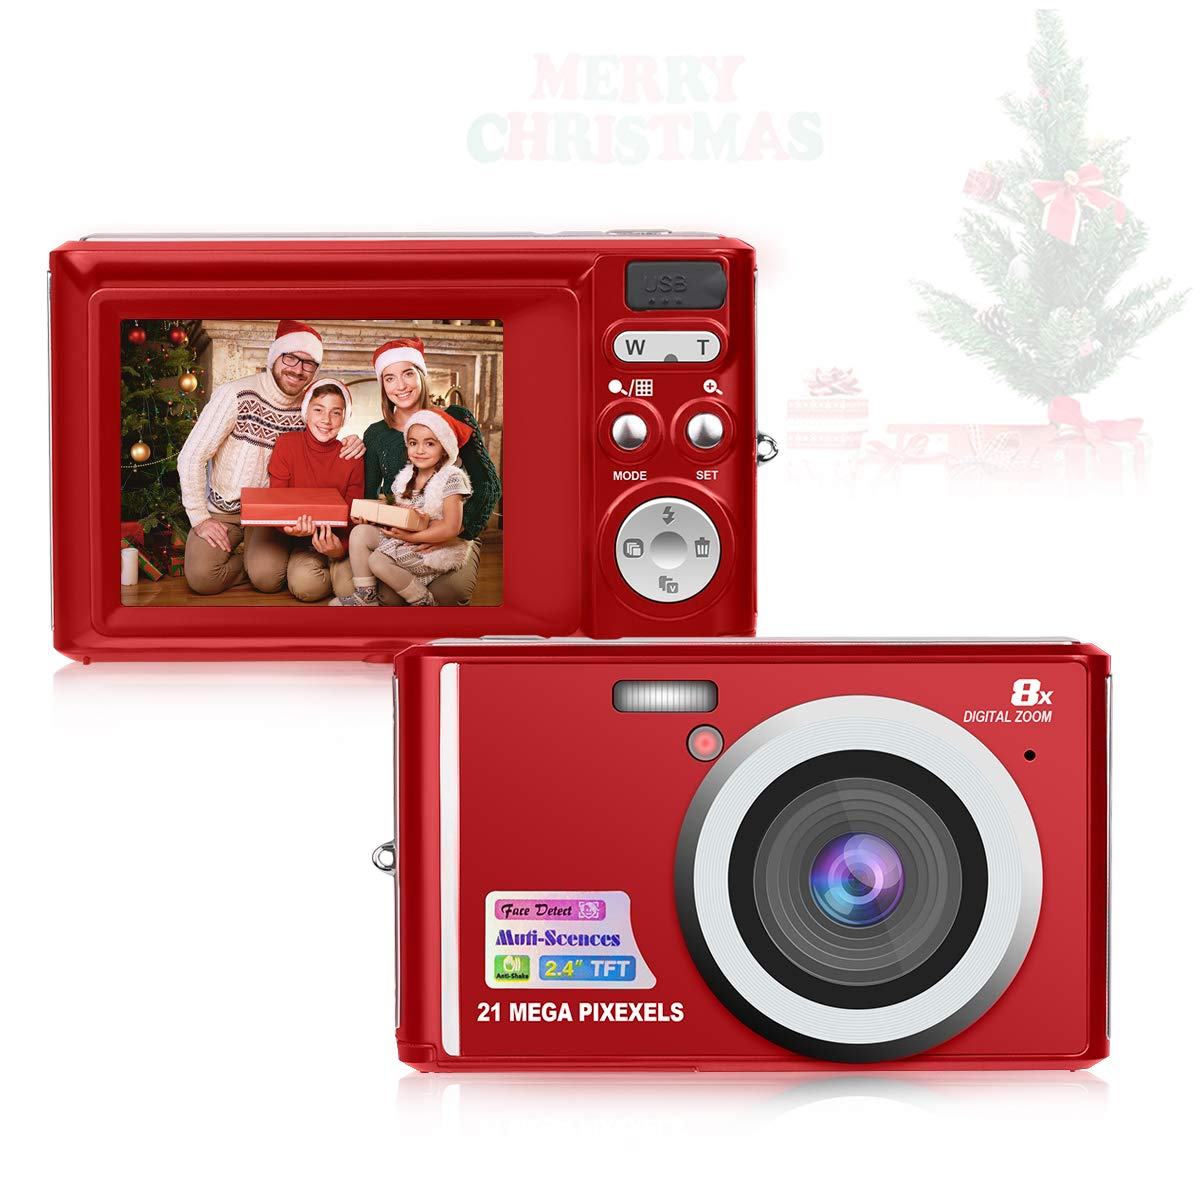 HD Mini Digital Cameras,Point and Shoot Digital Video Cameras-Travel,Camping,Gifts by Hasak1